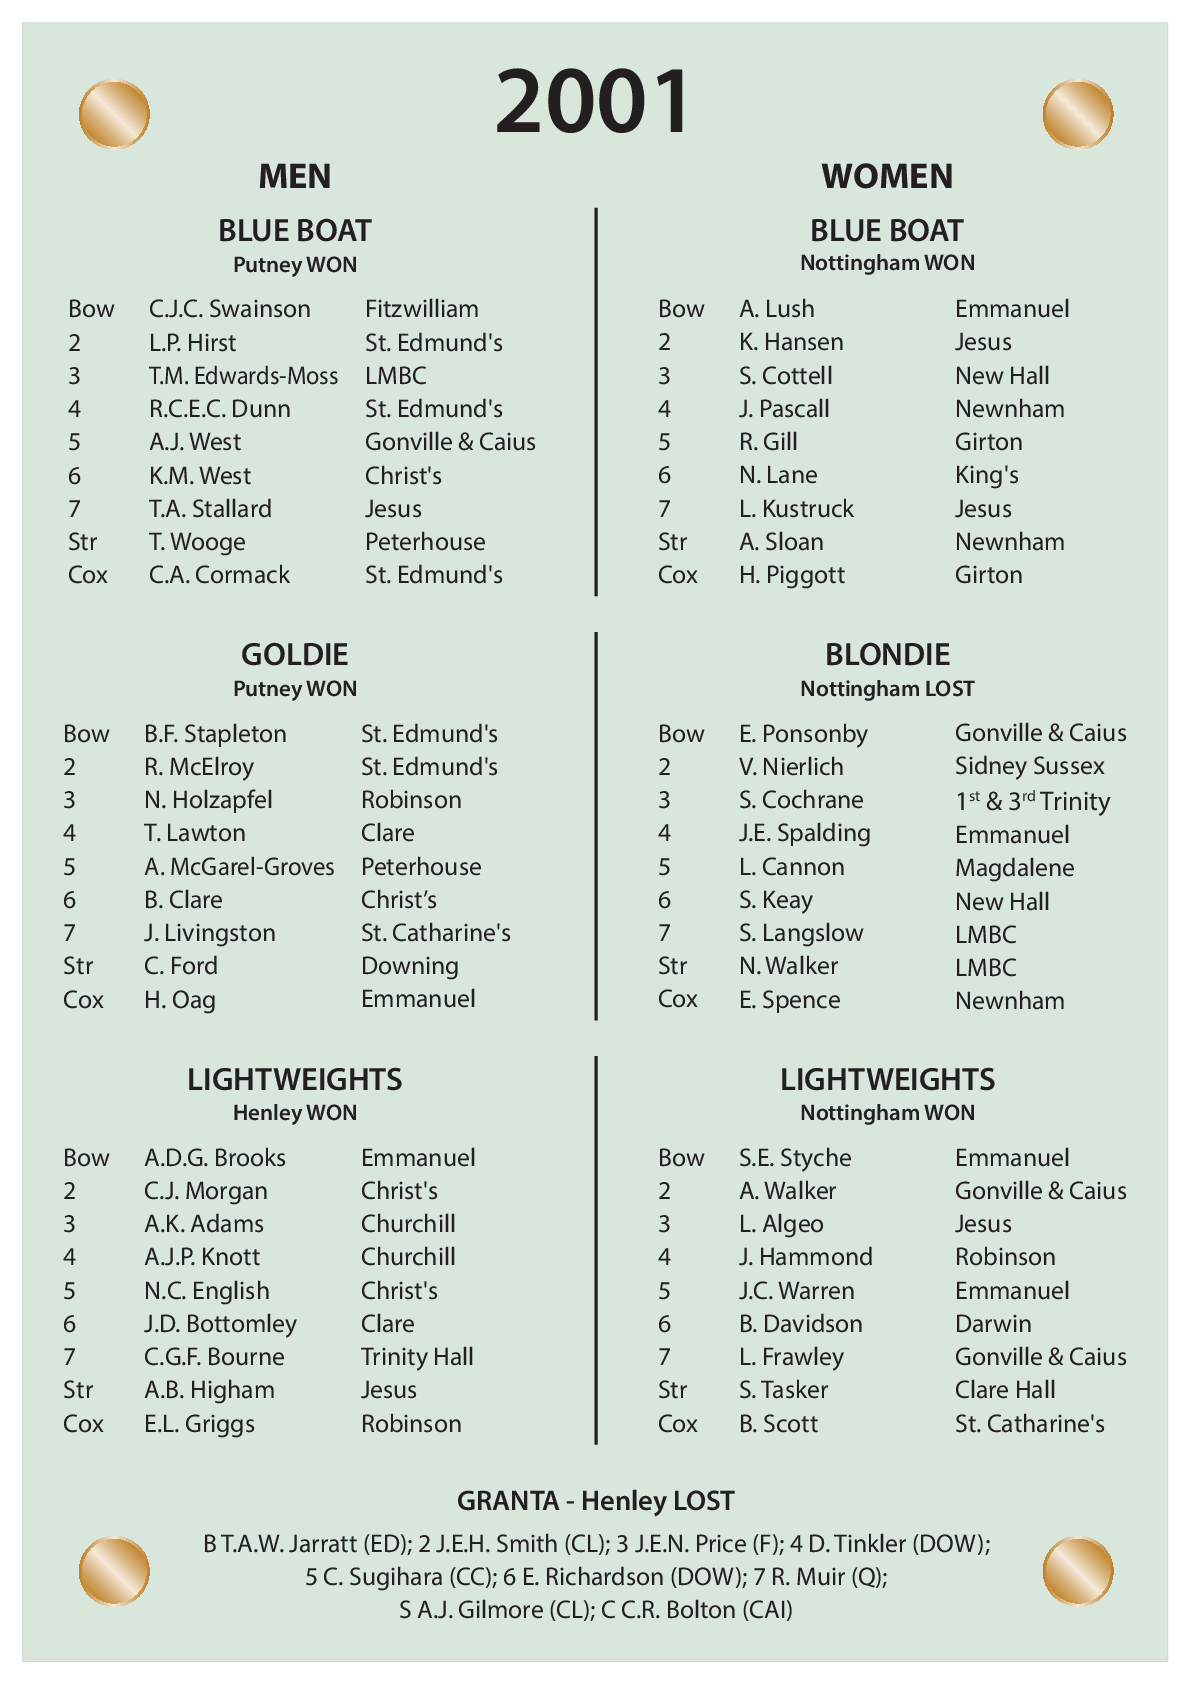 CUBC Crews And Results - 2001